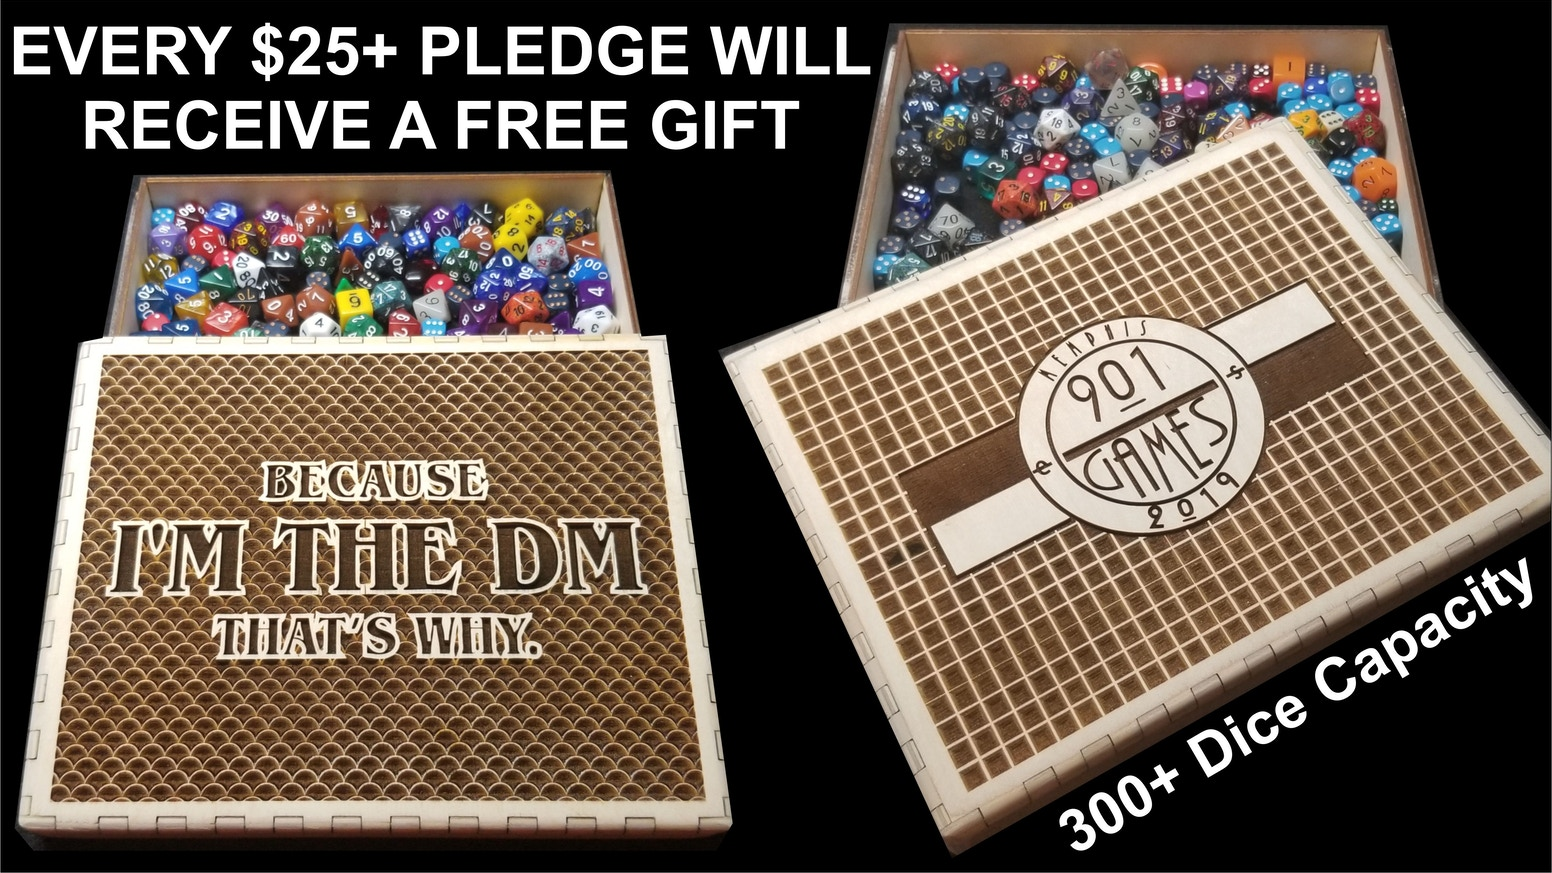 Capacity of over 300 dice in the XL plus Eco-Friendly Felt lining both the top and bottom make these a wonderful addition @ game night